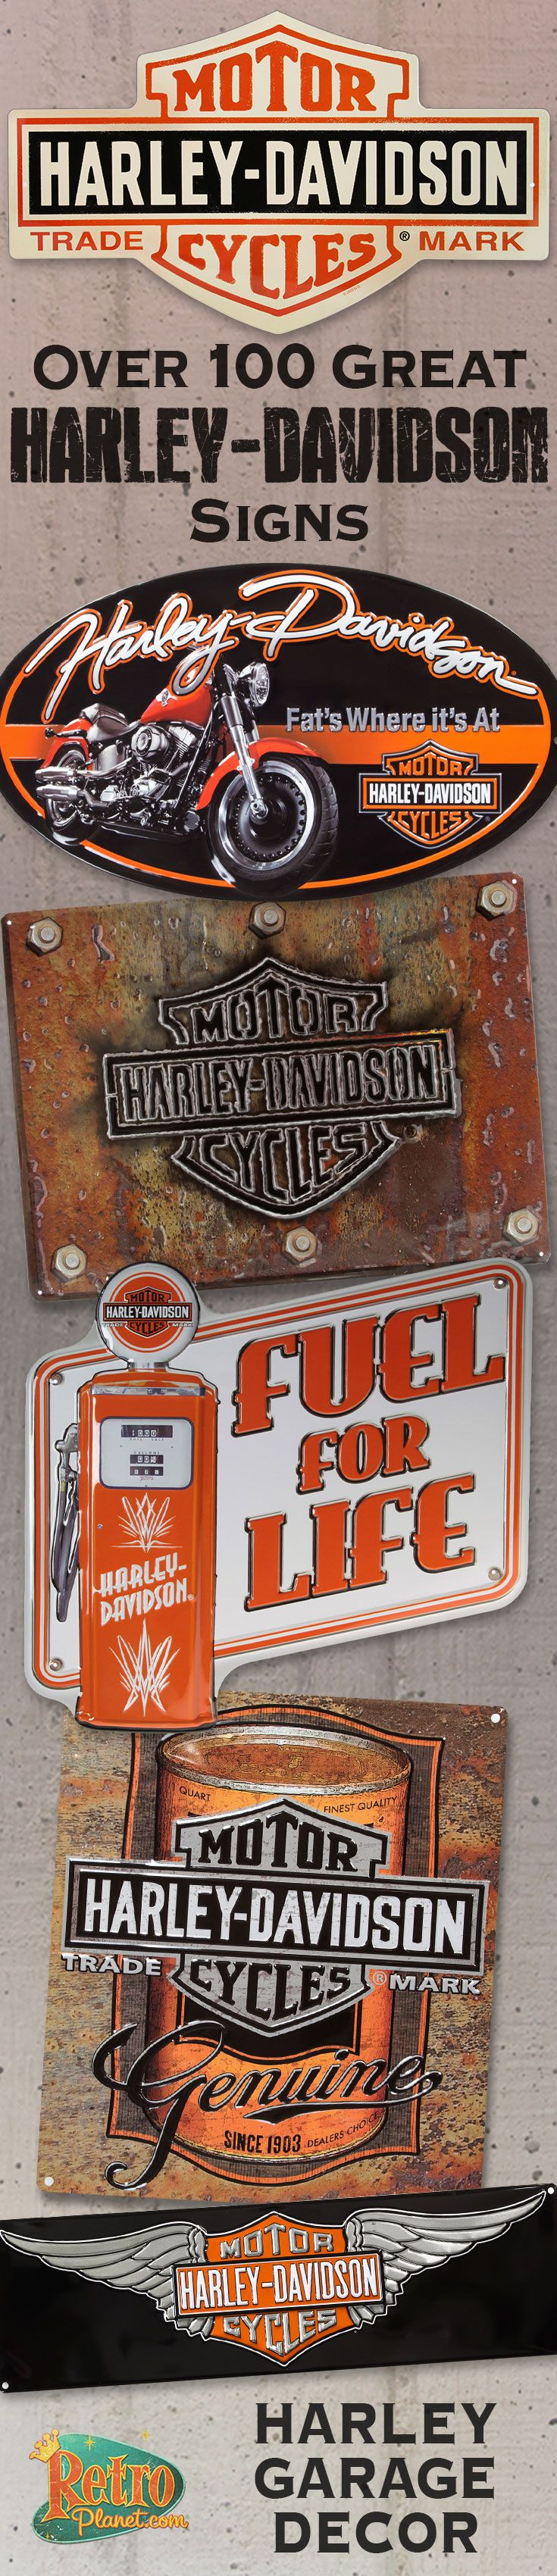 Harley-Davidson signs are a great way to create interesting wall art for decorating a garage, game room, man cave or just about any room. Many of our retro Harley-Davidson signs capture the long history that Harleys have played in being a classic American icon.